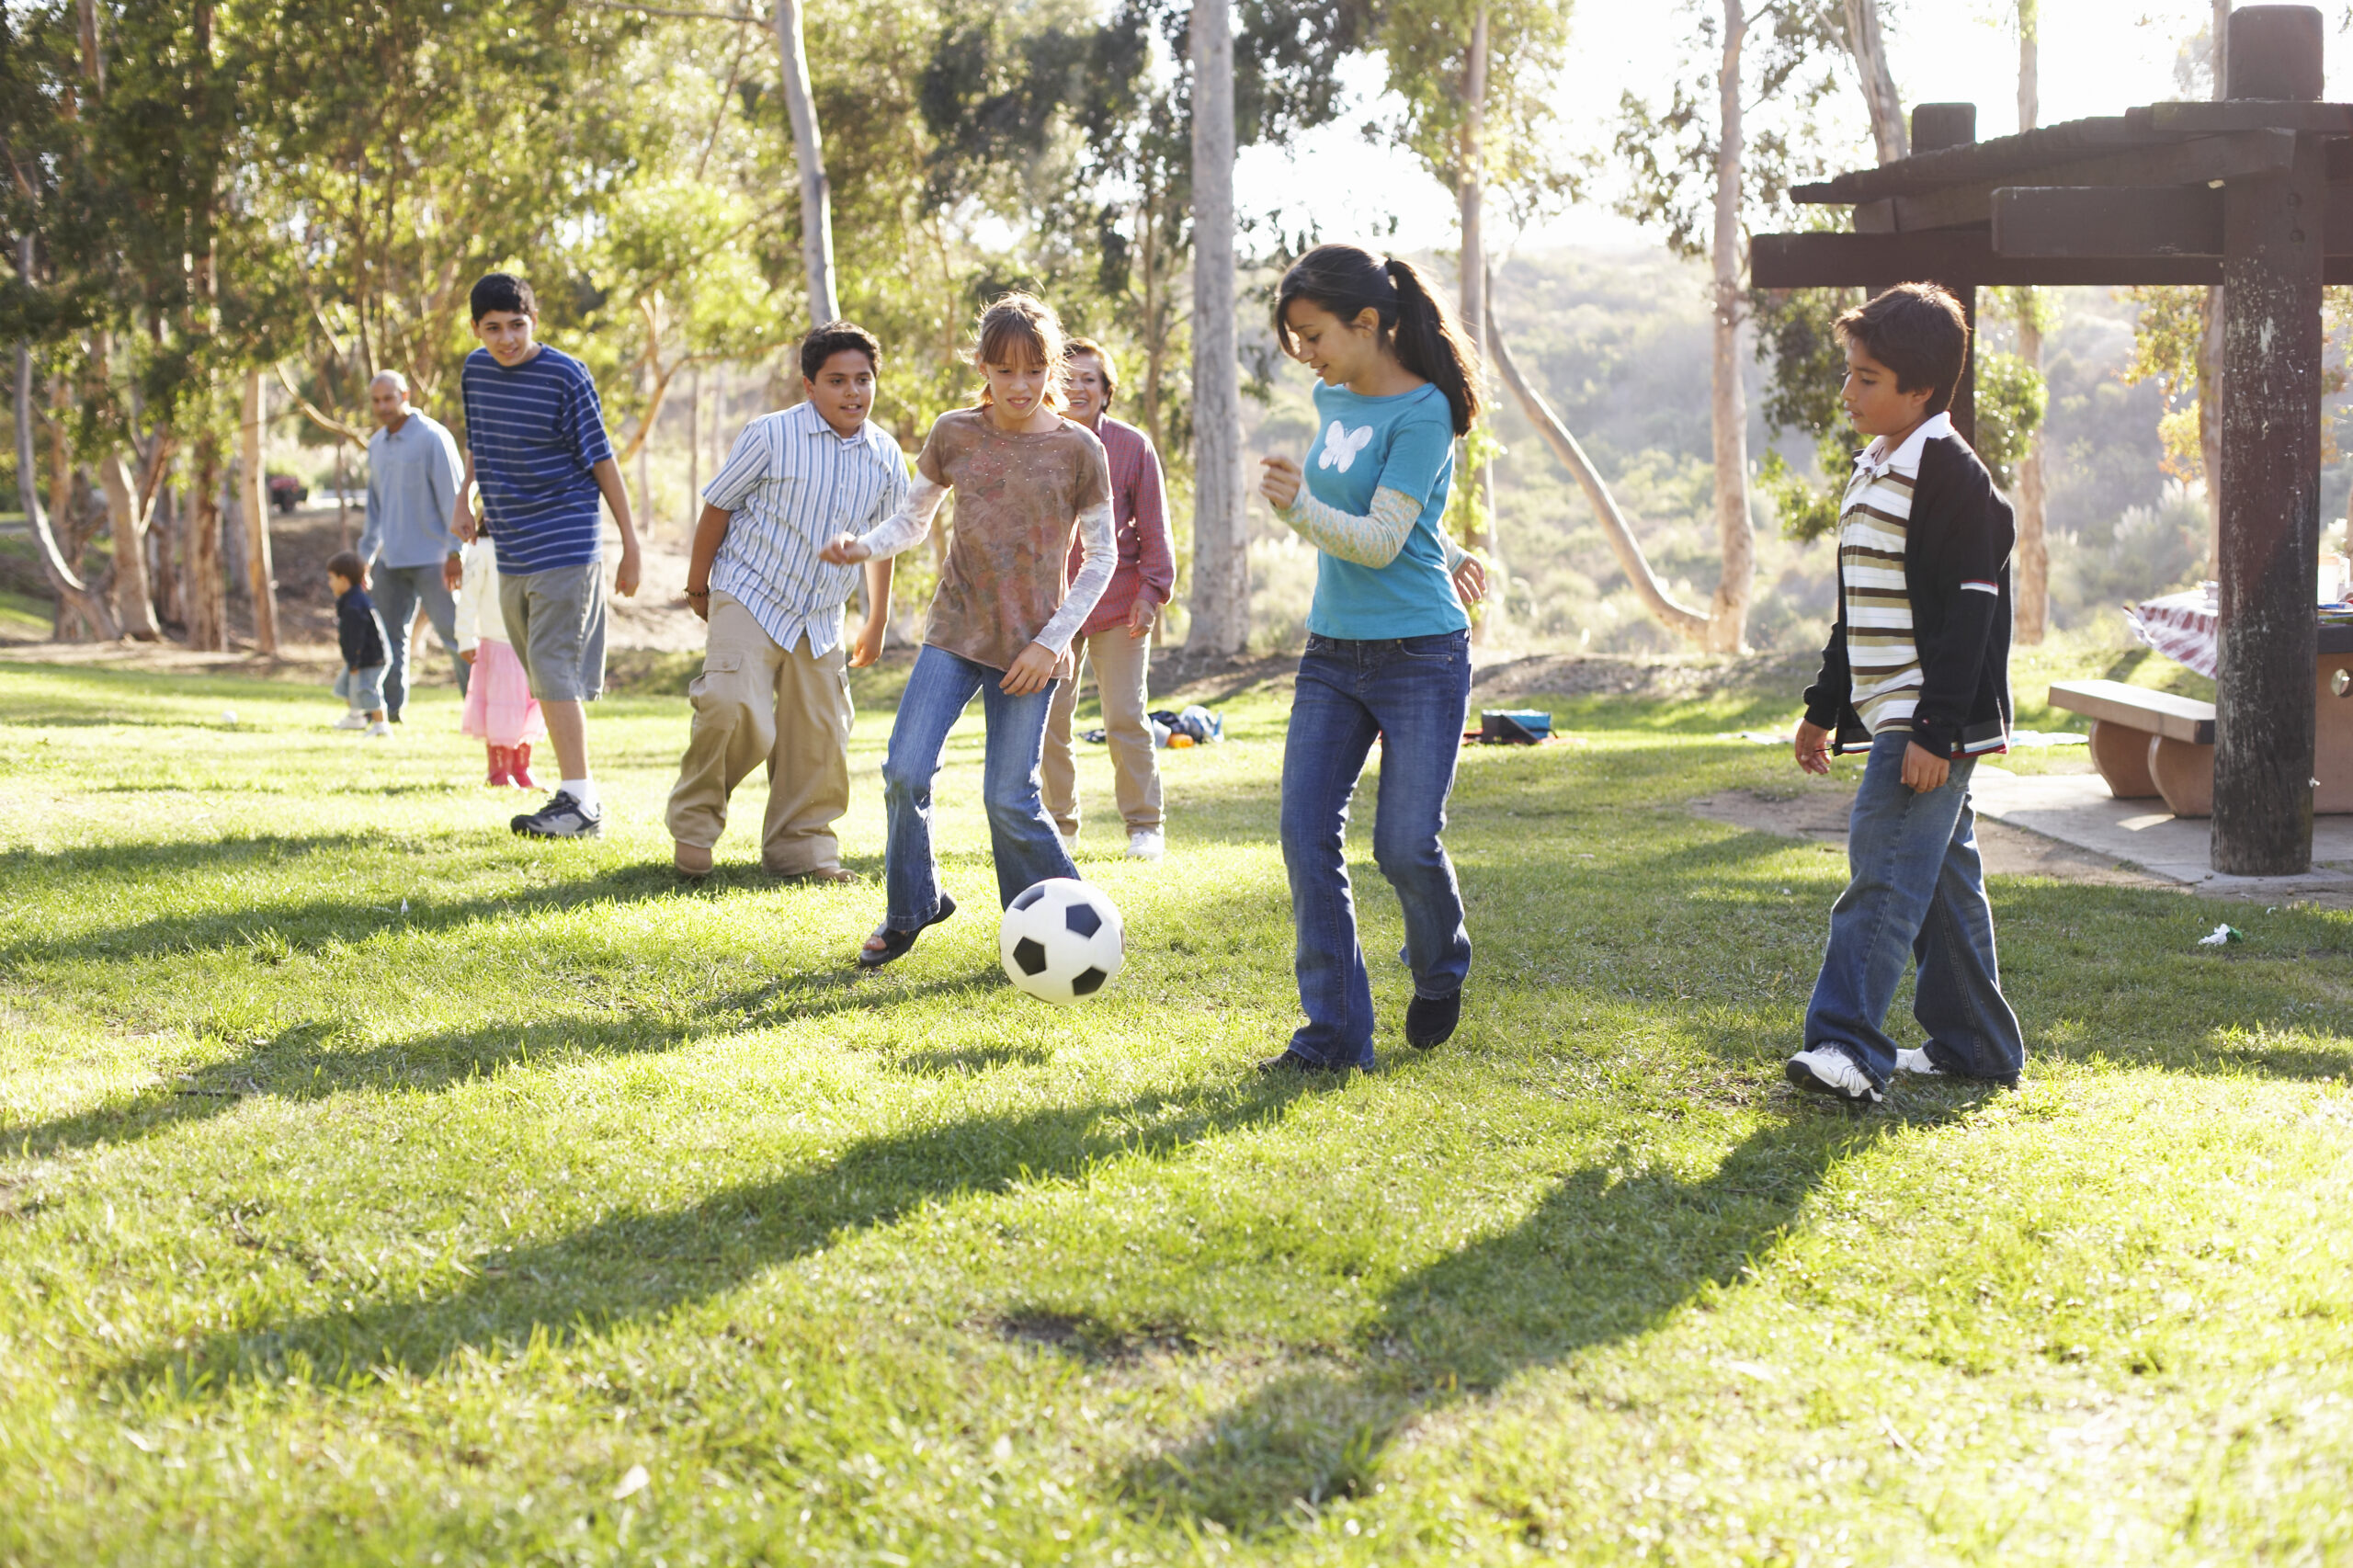 Children (9-14) playing soccer in park